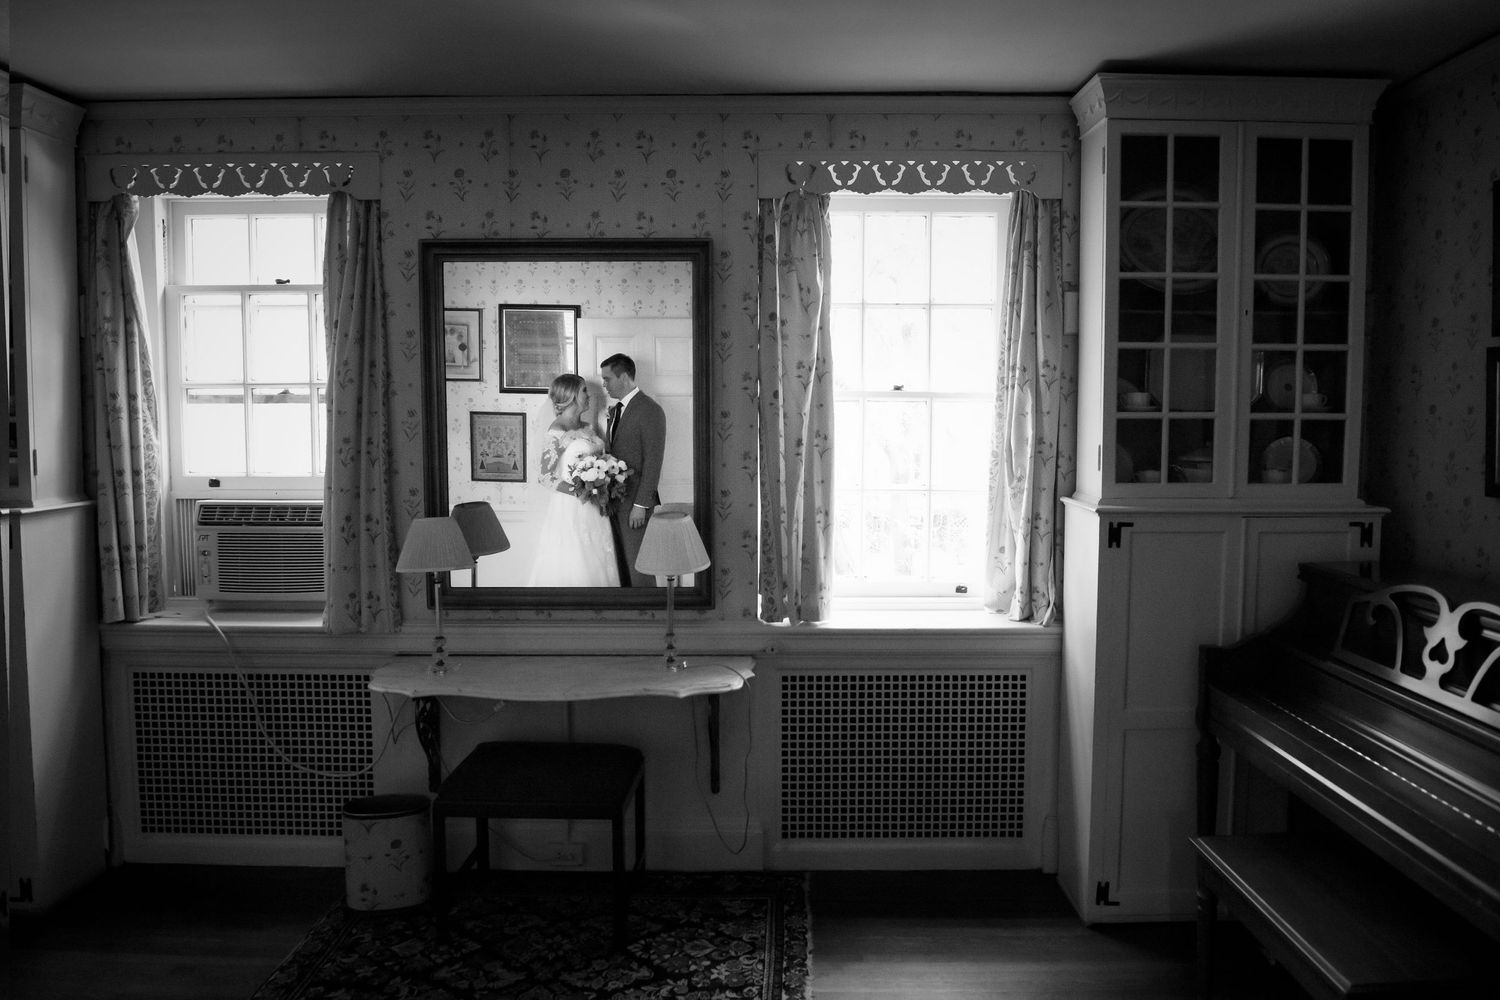 room shot at Colonial Dames in Philadelphia with bride and groom reflected in mirror